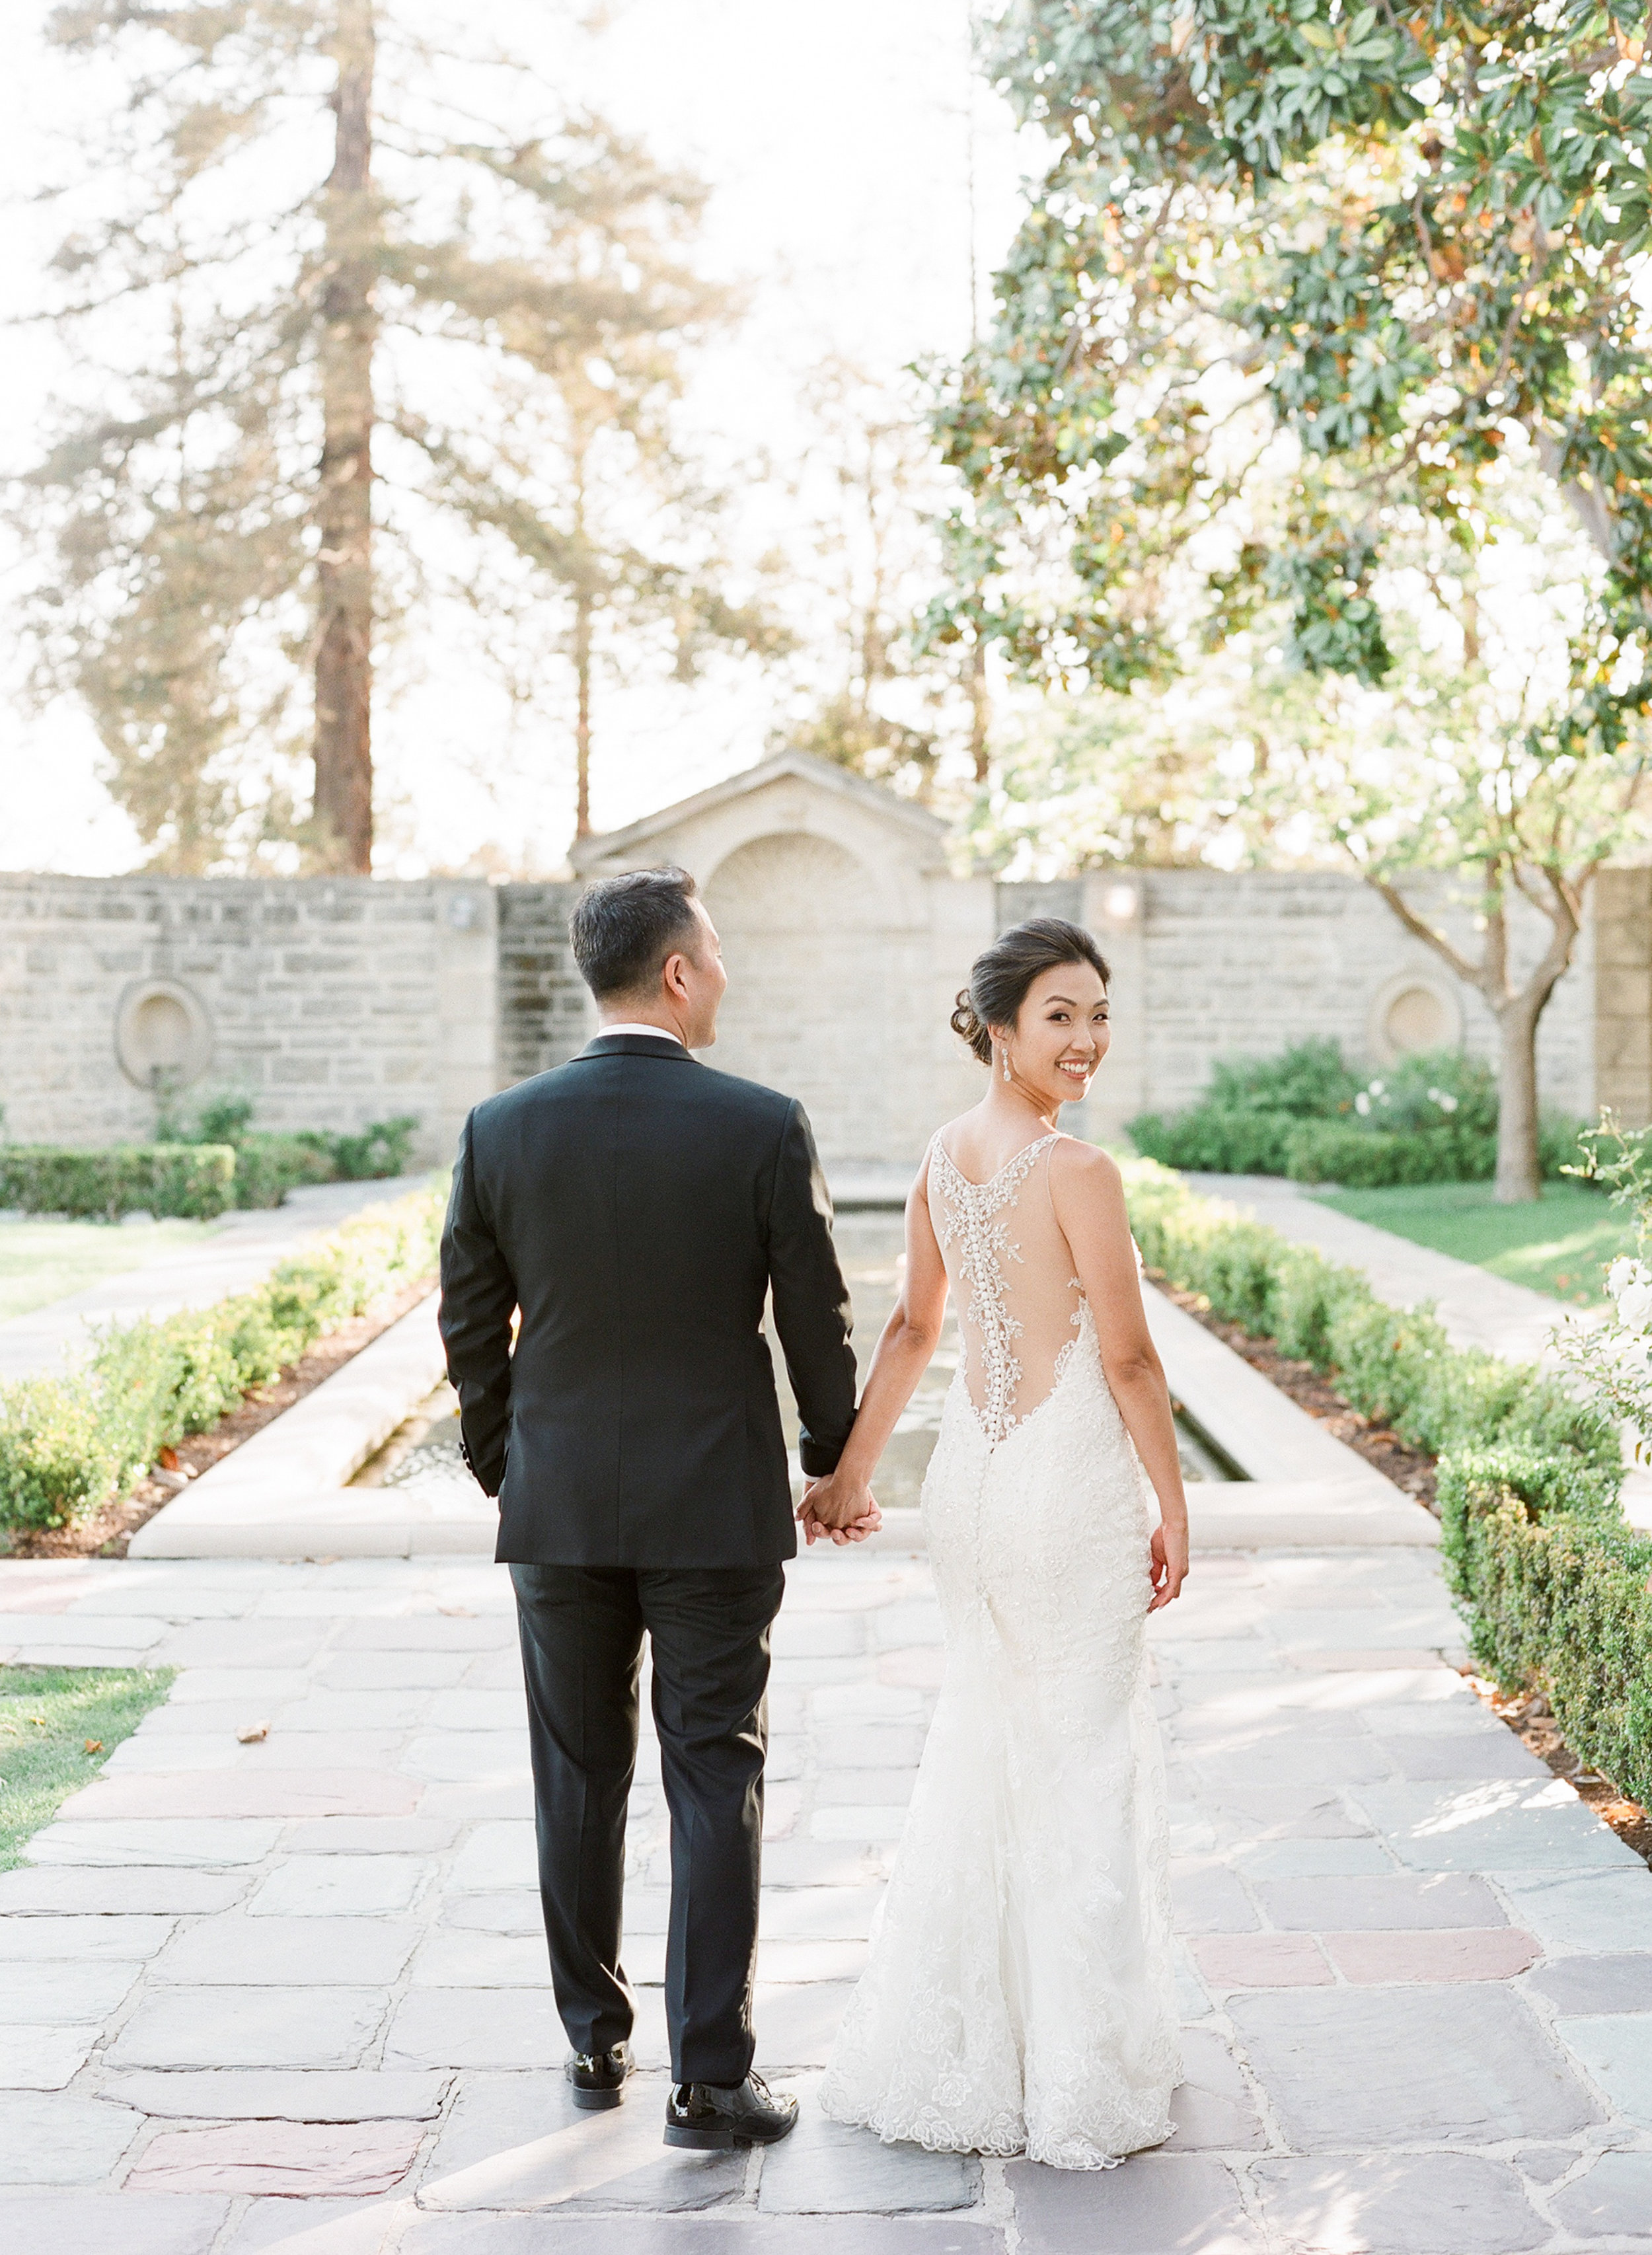 Greystone-Mansion-Wedding-Kristina-Adams-865.jpg